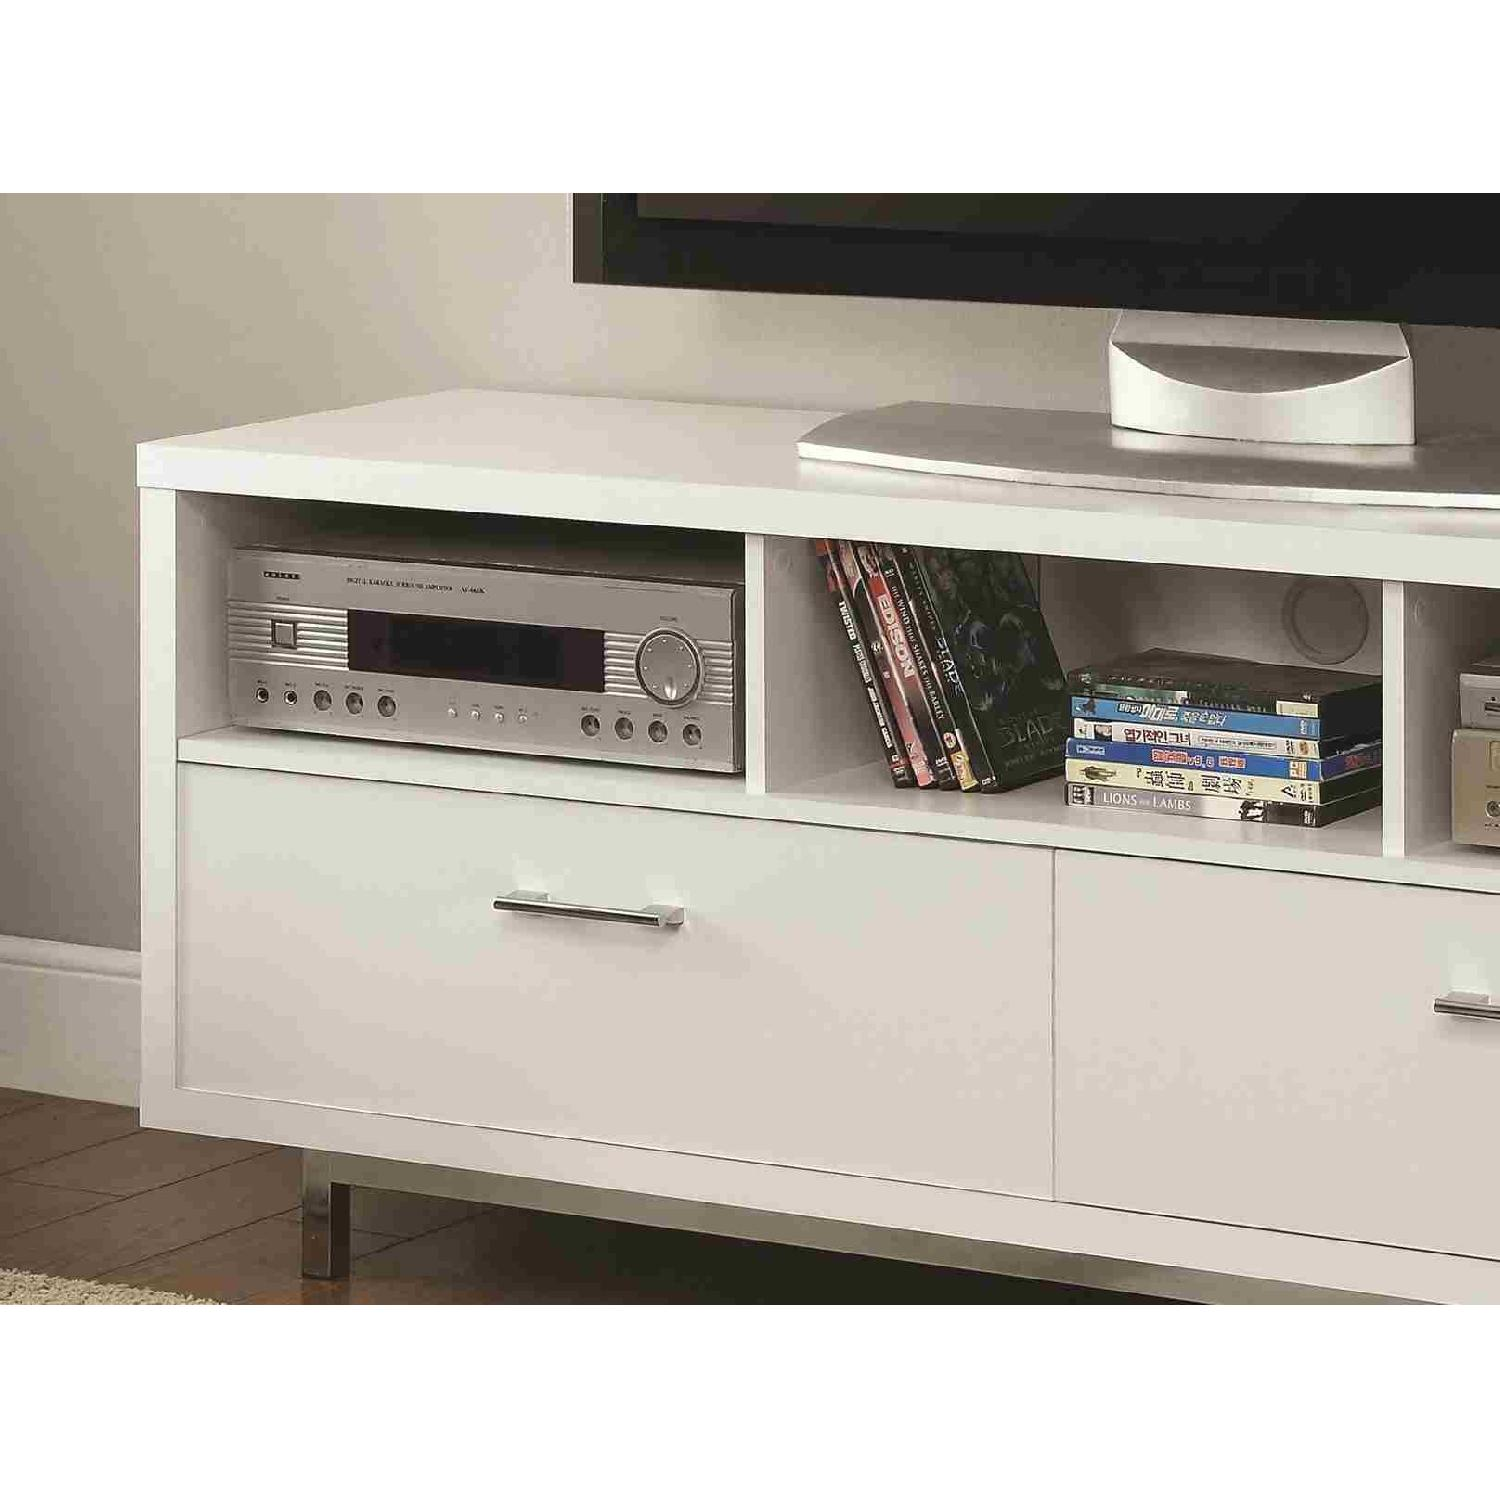 Modern TV Stand With 3 Media Shelves & 2 Utility Drawers w/ Silver Hardware in Matte White Finish - image-2